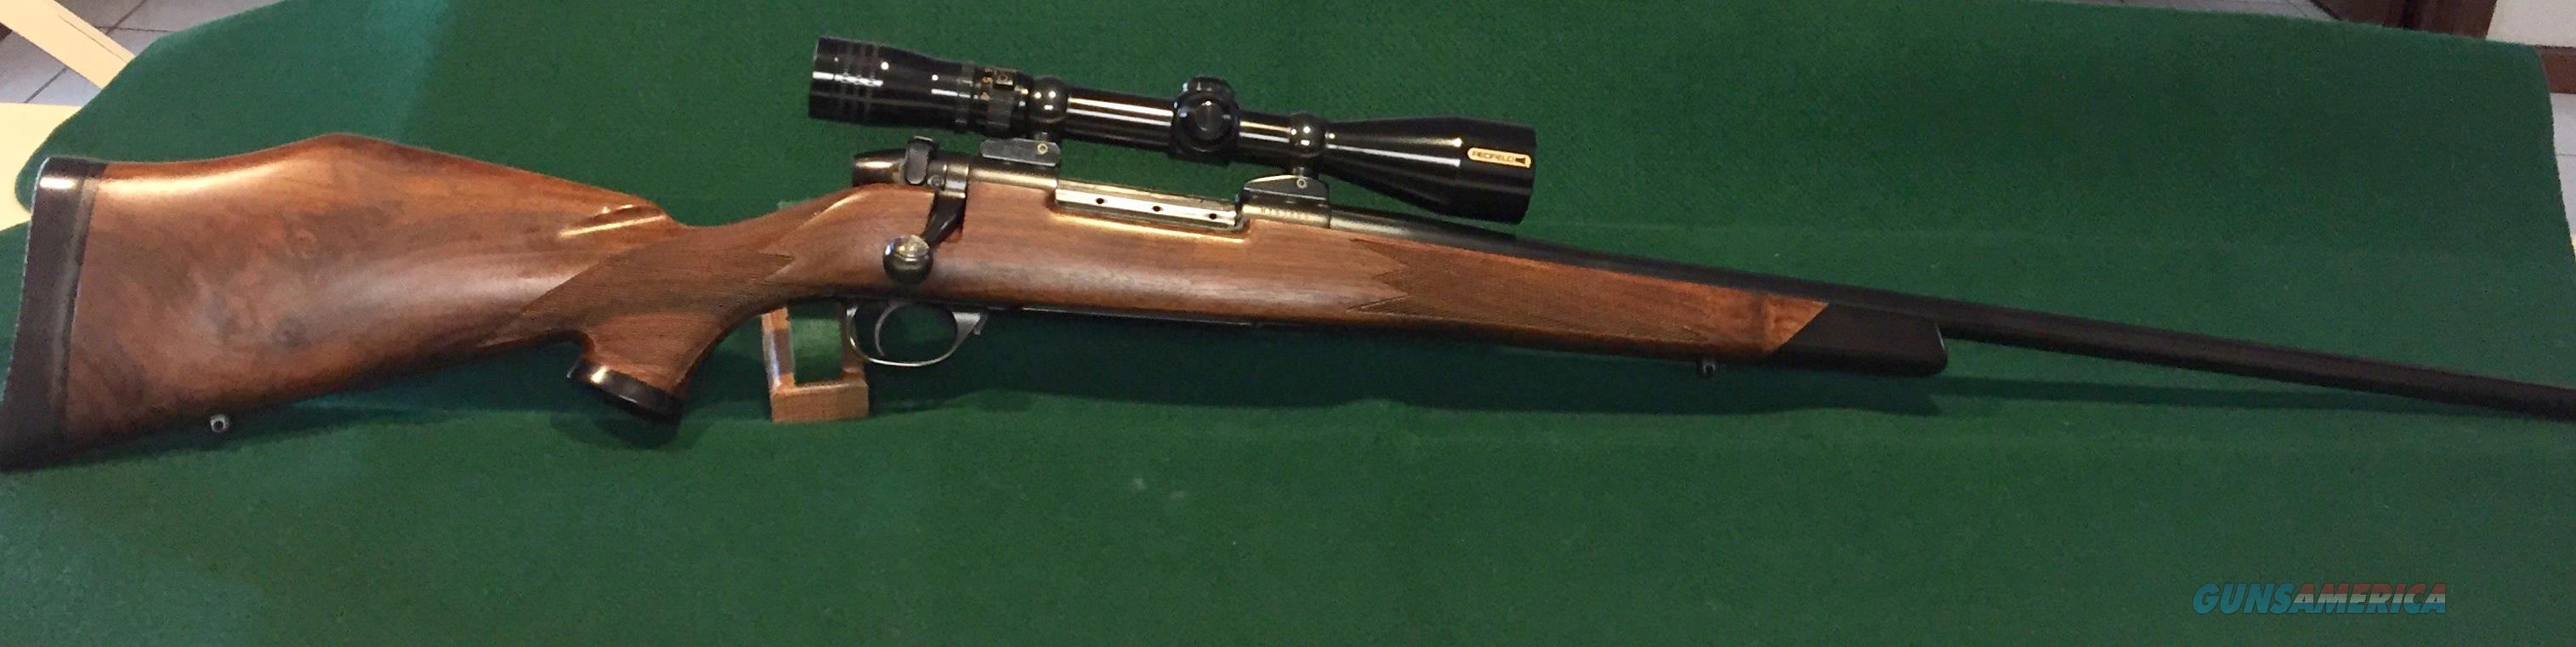 257 Weatherby Euromark, South Gate, 3 x 9 Redfield Illuminator, Conetrol Mounts  Guns > Rifles > Weatherby Rifles > Sporting